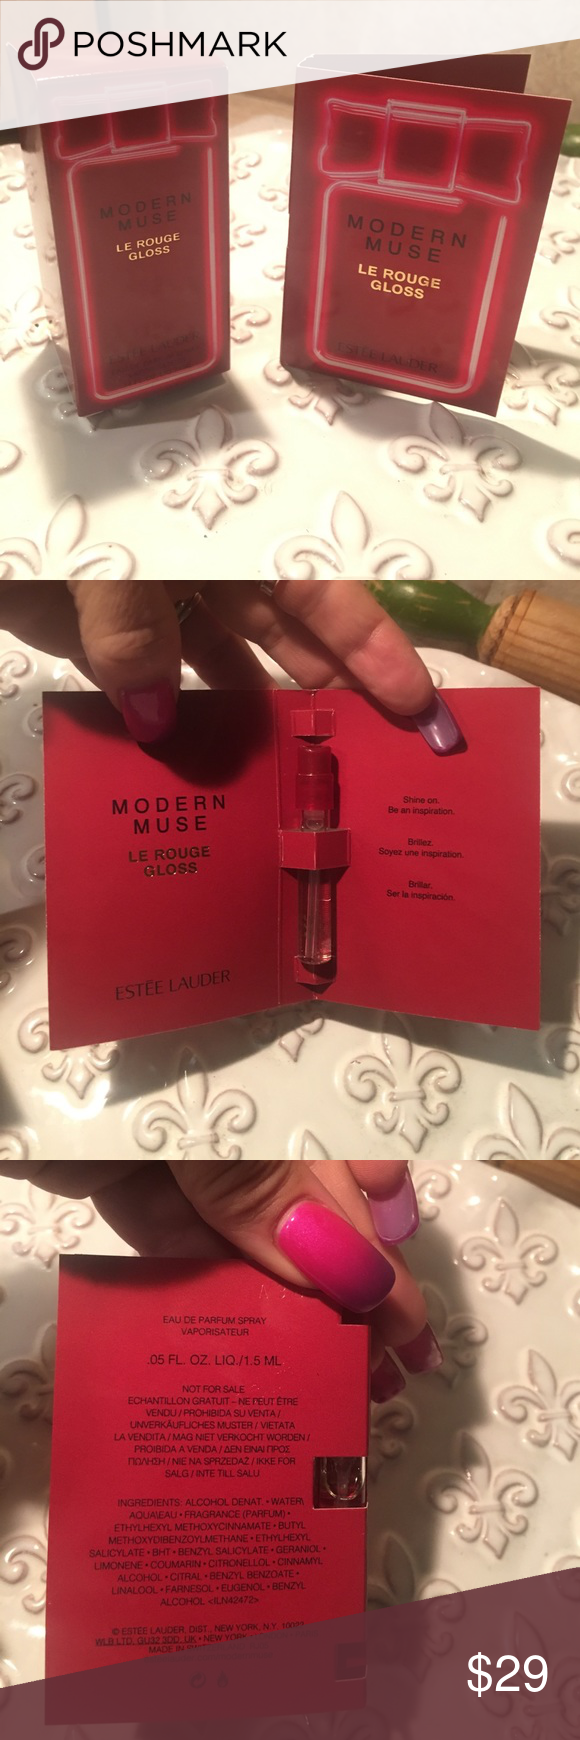 Modern Muse Le Rouge Gloss By Estee Lauder Modern Muse Le Rouge Gloss Modern Muse Estee Lauder